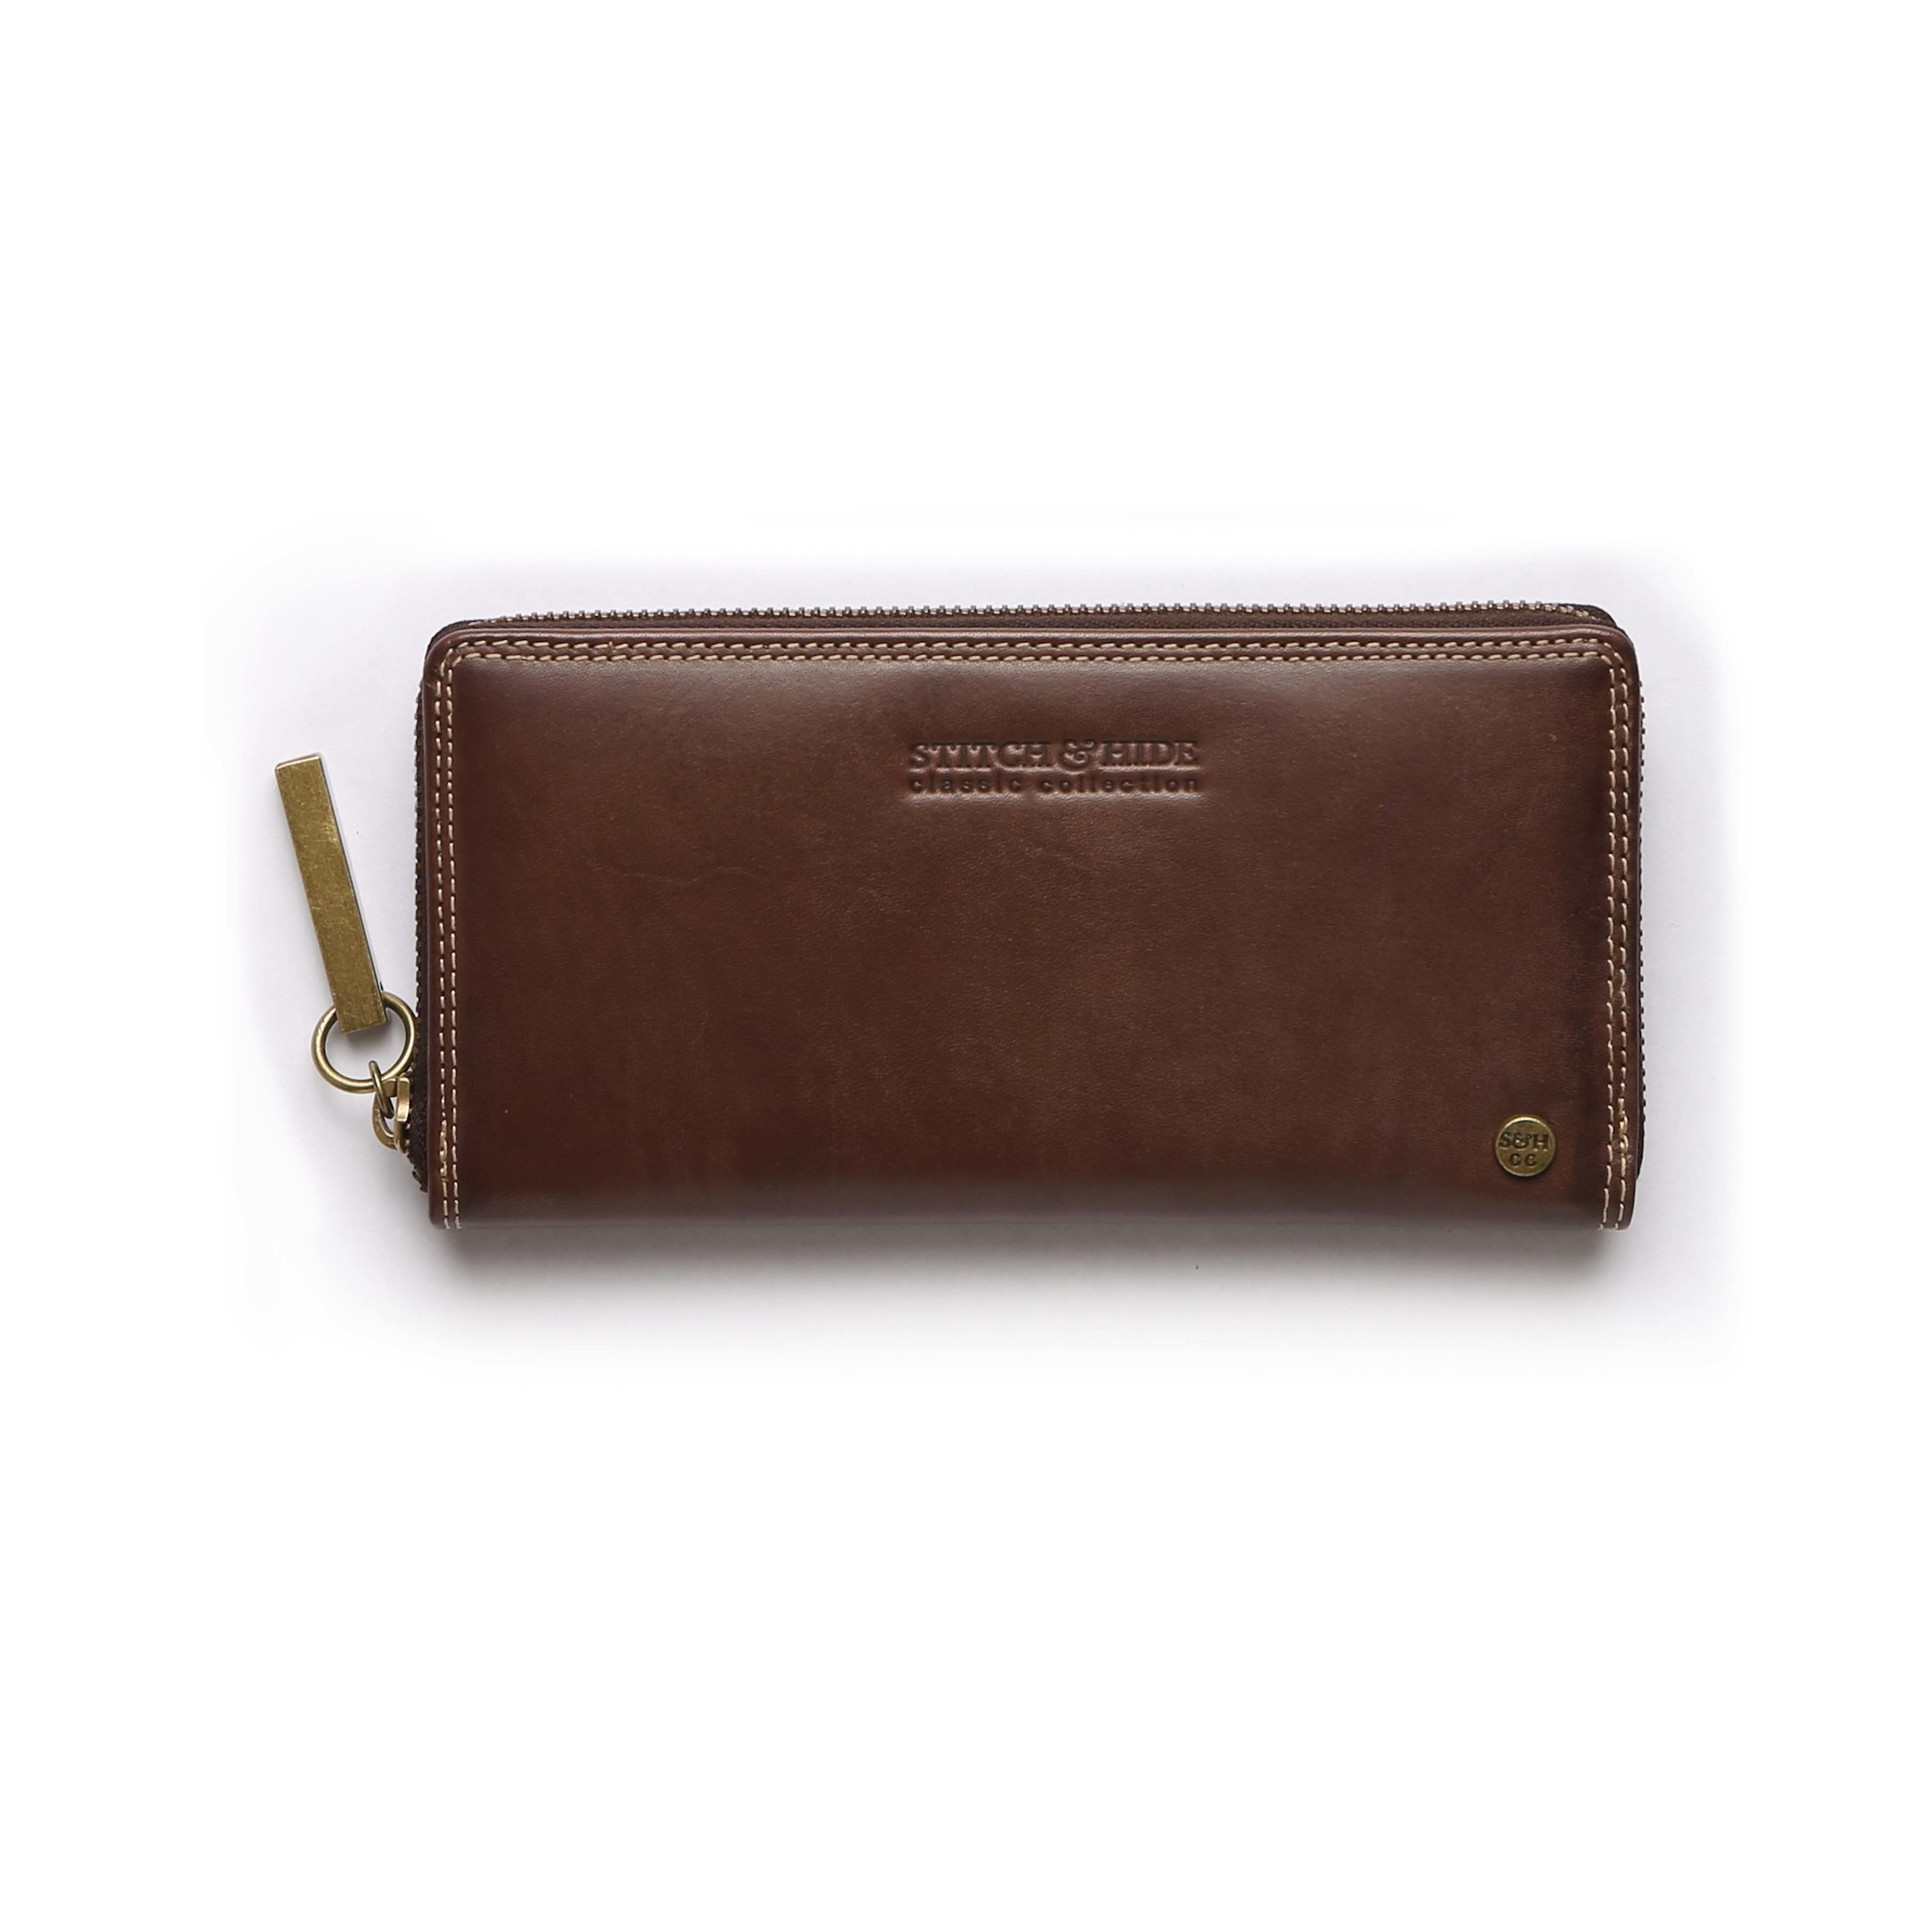 72dpi-2133406f02-SandH_CHRISTINA_WALLET_CHOCOLATE_FRONT